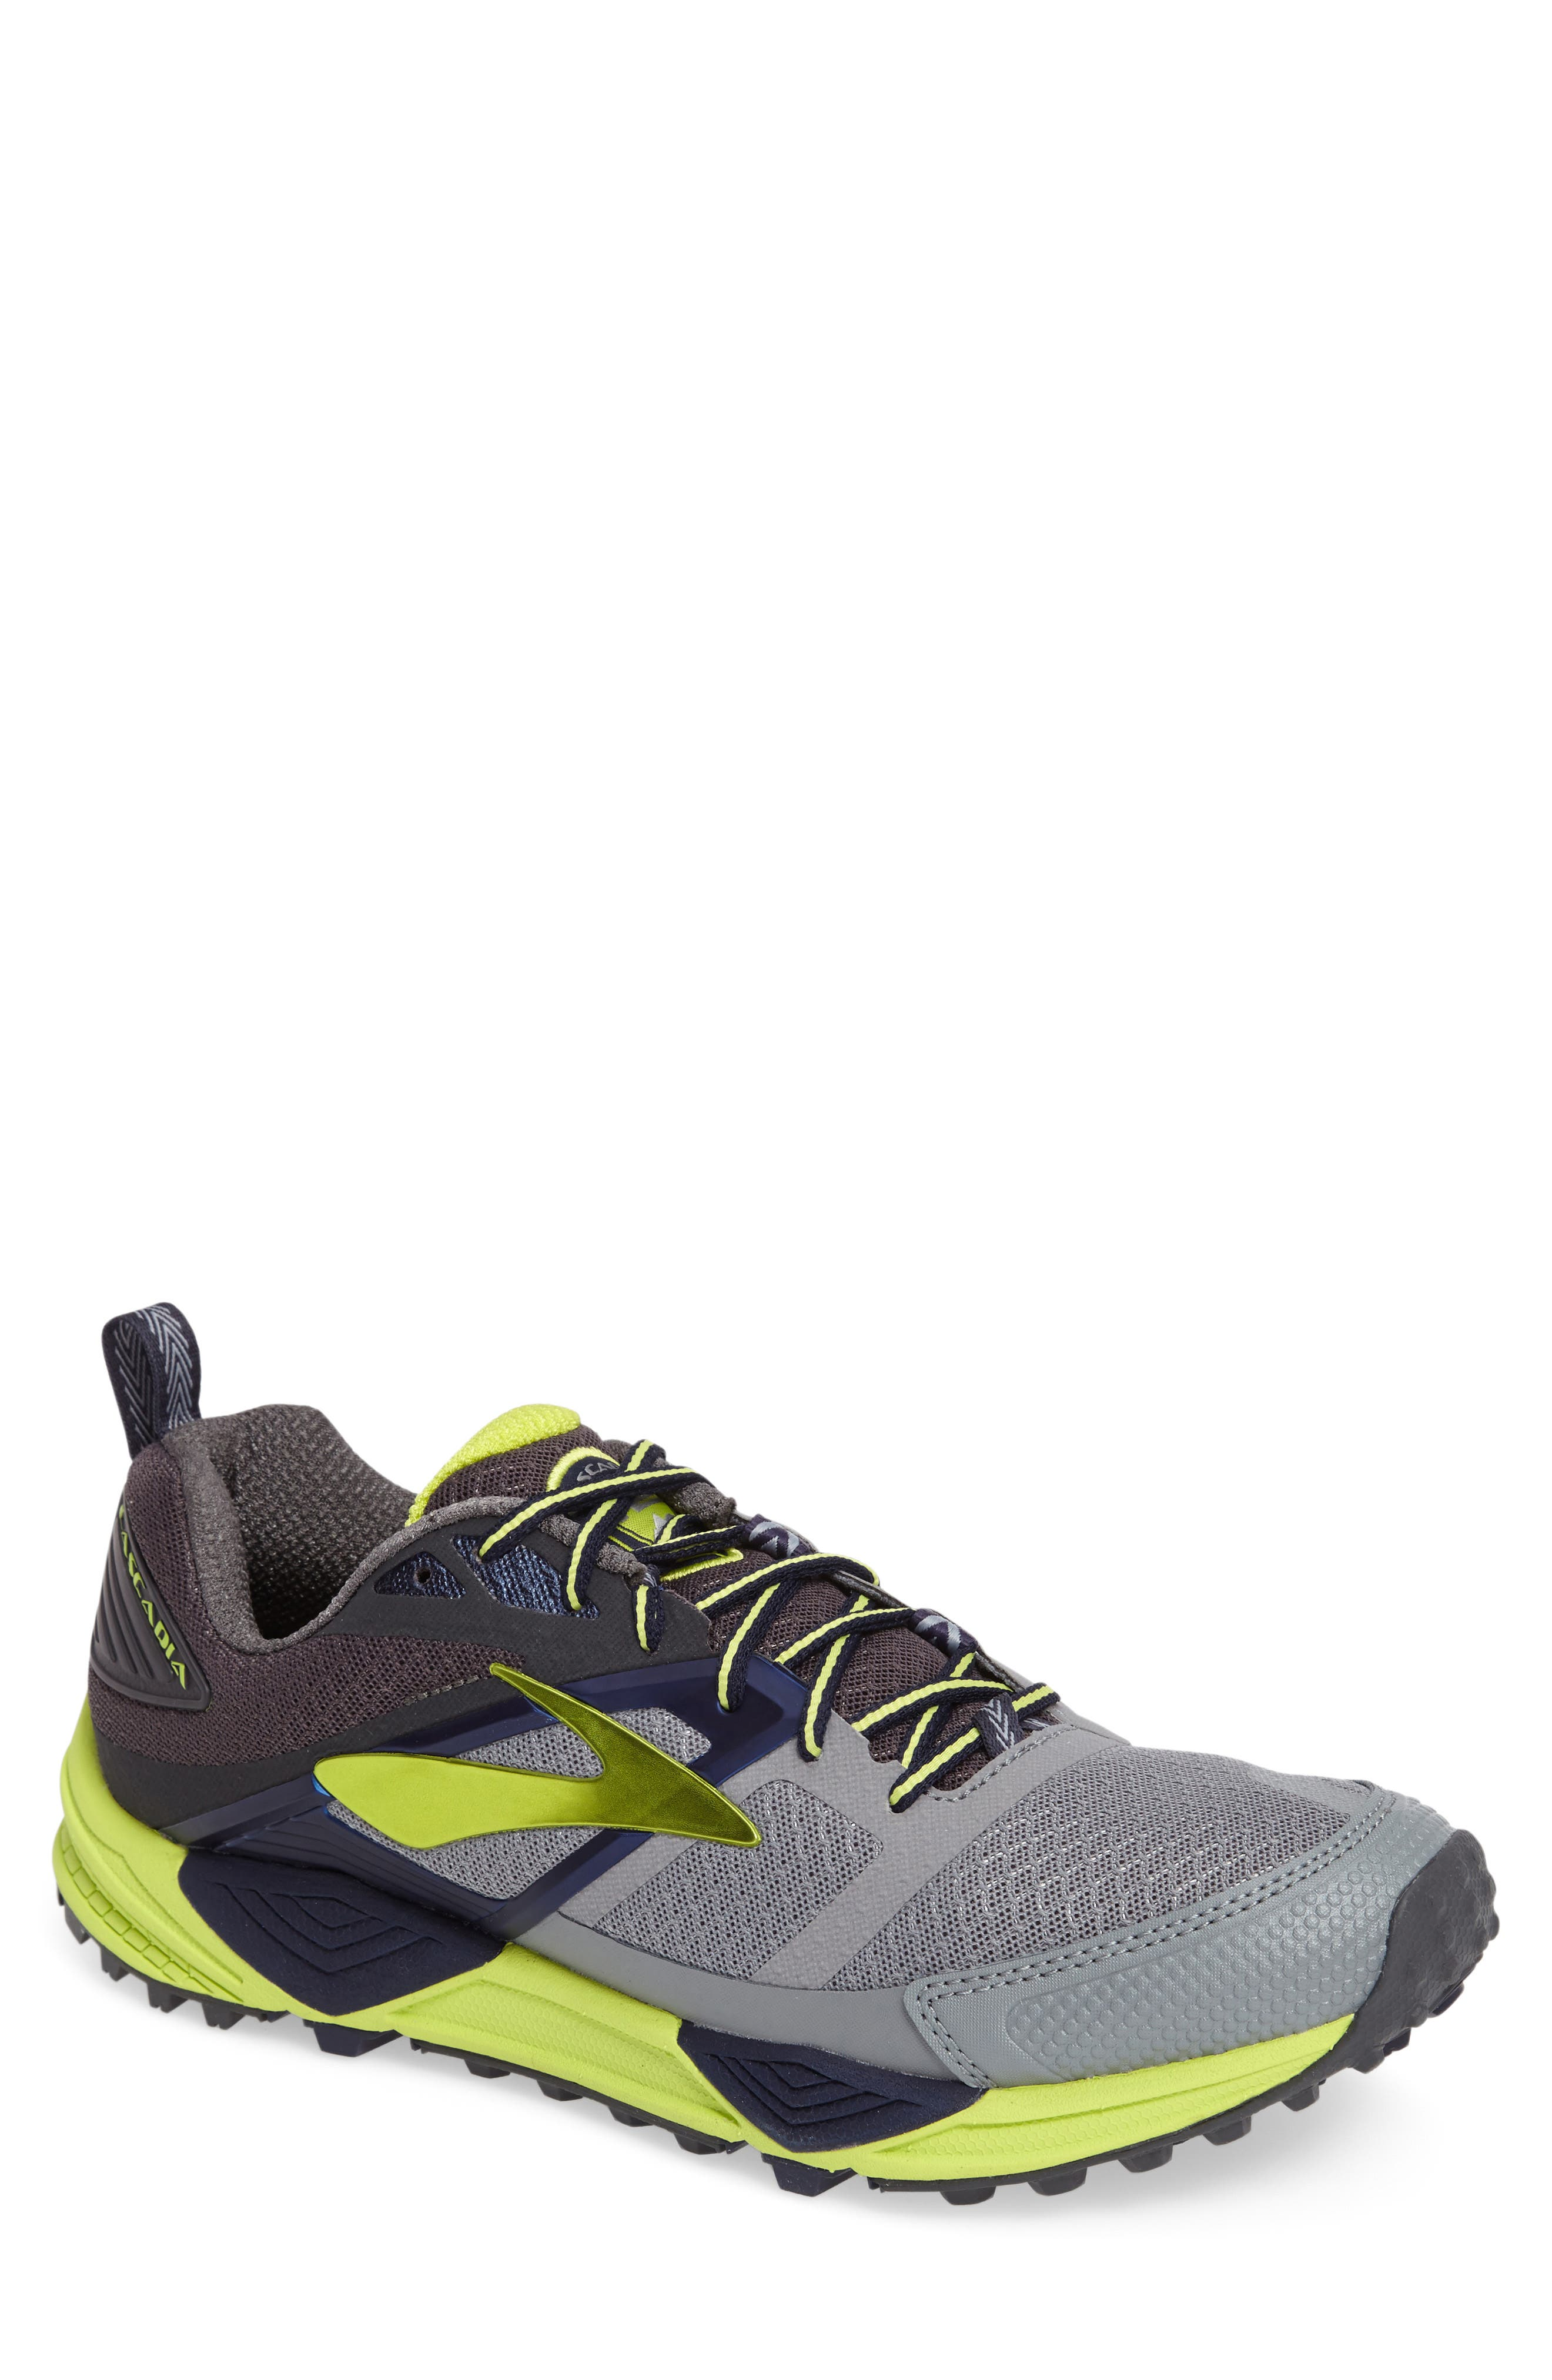 Cascadia 12 Trail Running Shoe,                         Main,                         color, Grey/ Anthracite/ Lime Punch